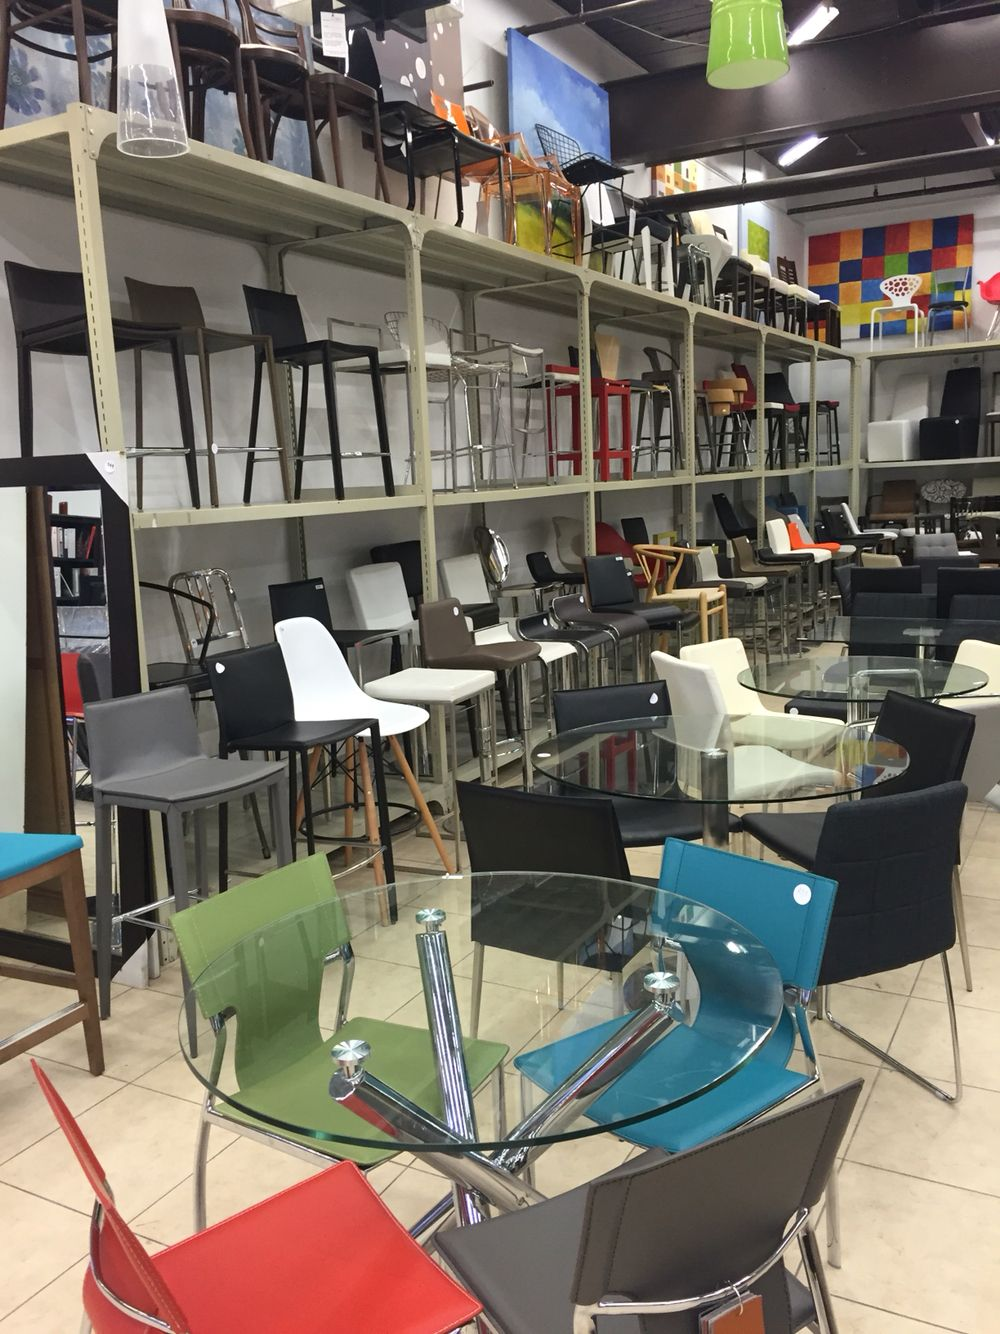 Modern And Contemporary Bar Stool Chairs Furniture Toronto 700 Kipling Ave Etobicoke